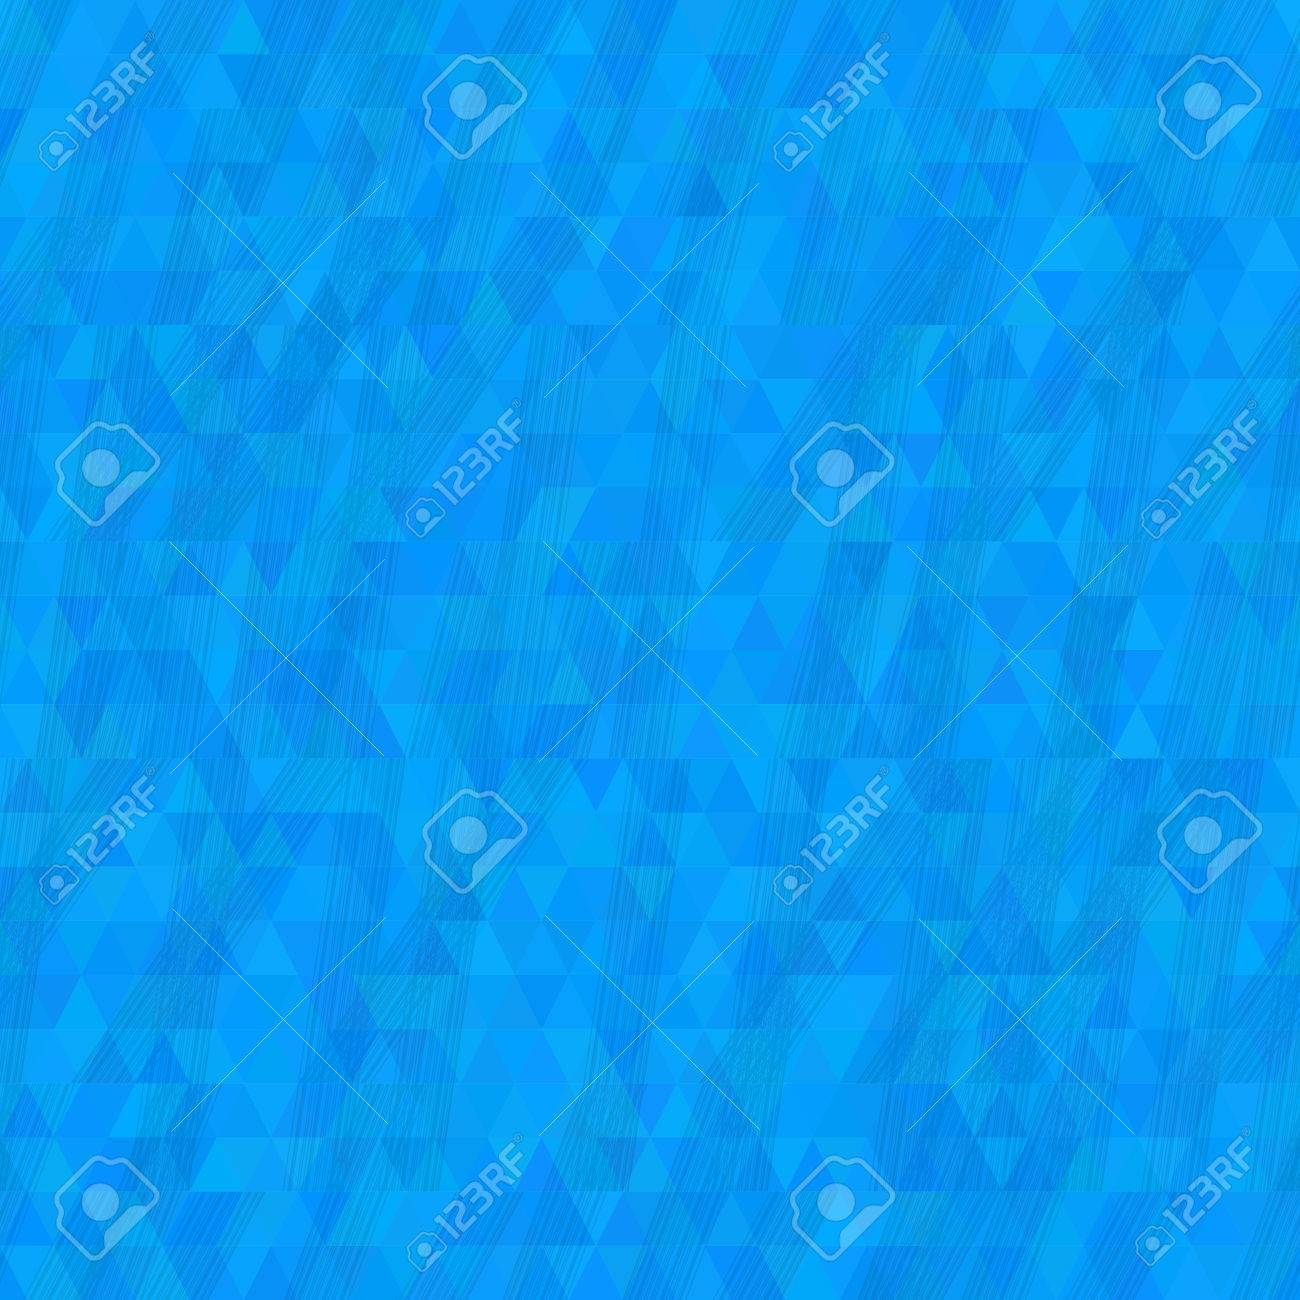 Seamless Pattern For Wallpaper, Web Page Background, Surface ...